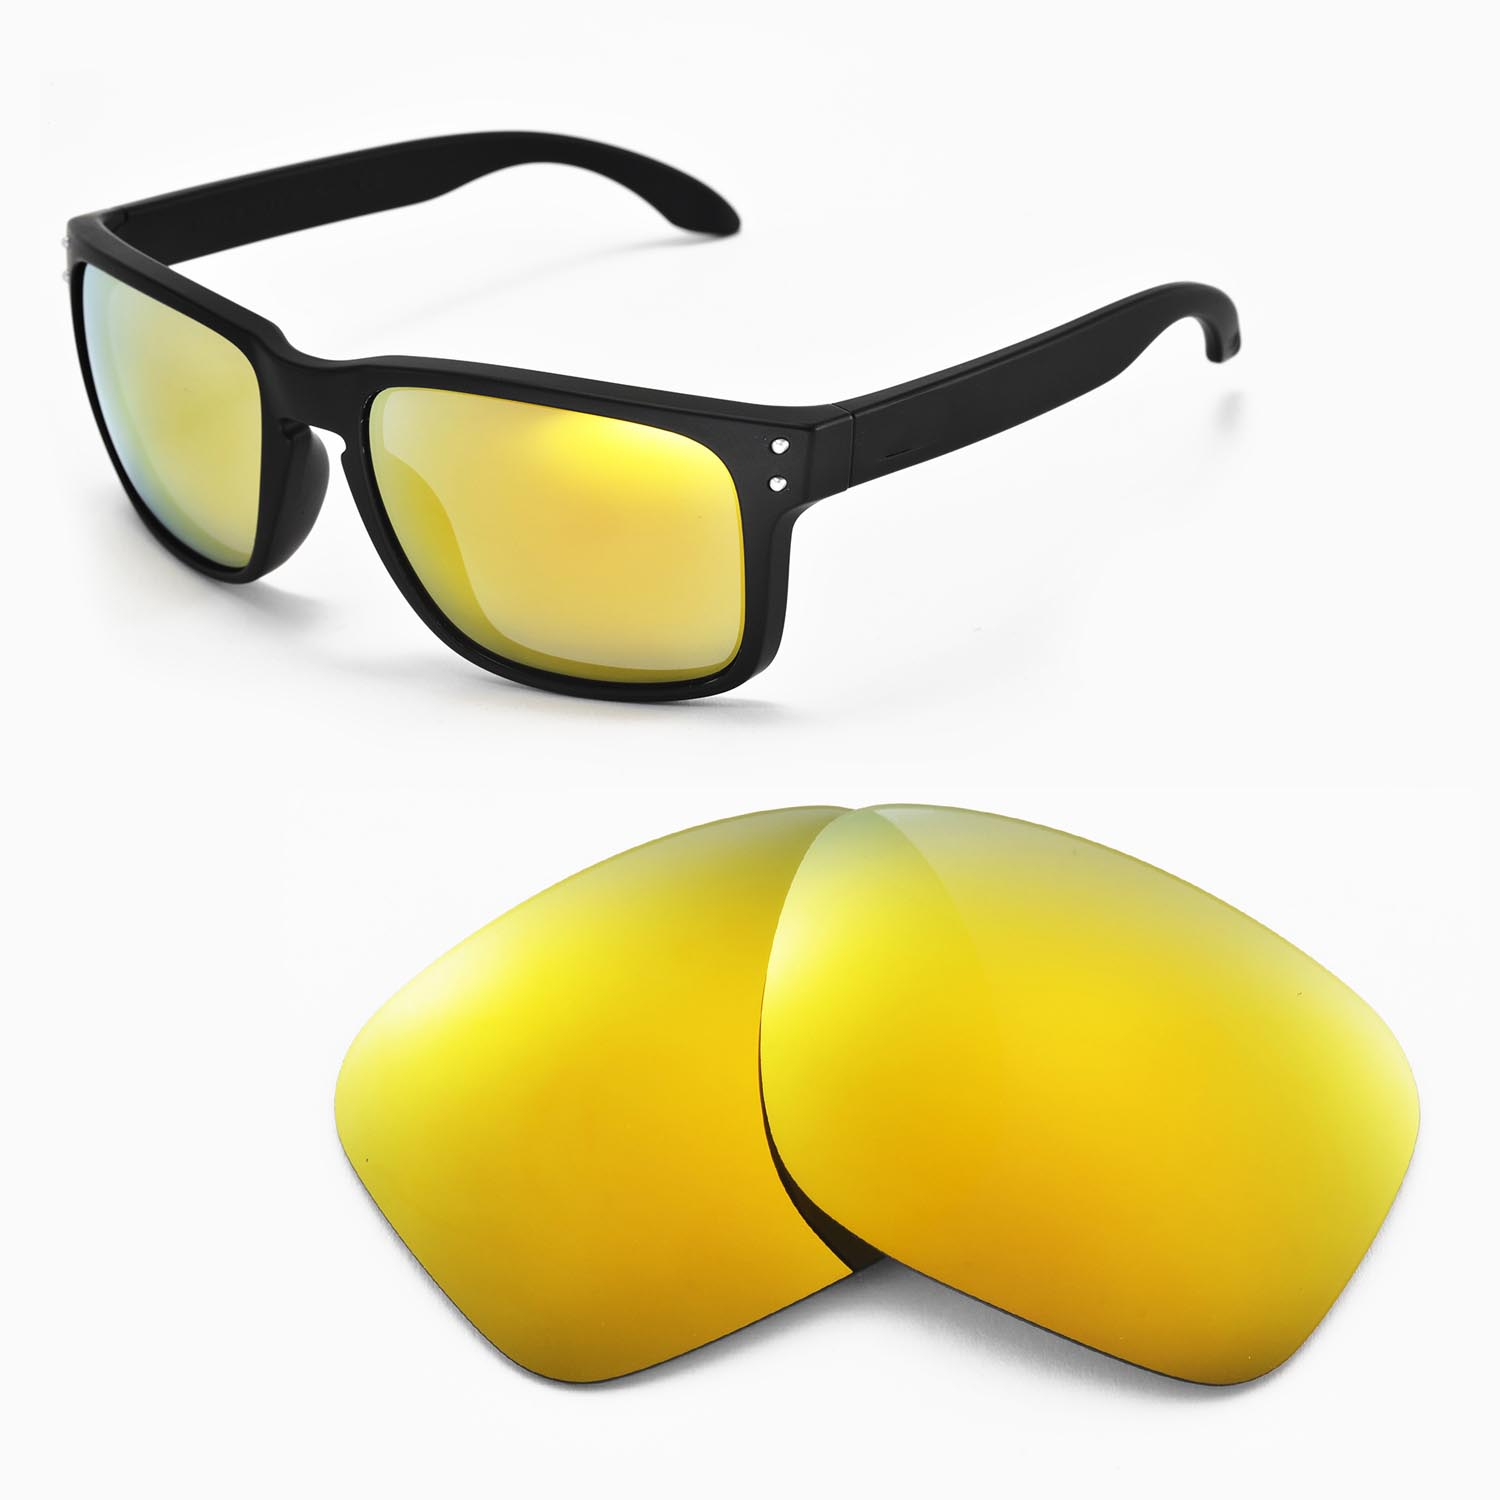 new oakley lenses  New Walleva Polarized 24K Gold Replacement Lenses For Oakley ...